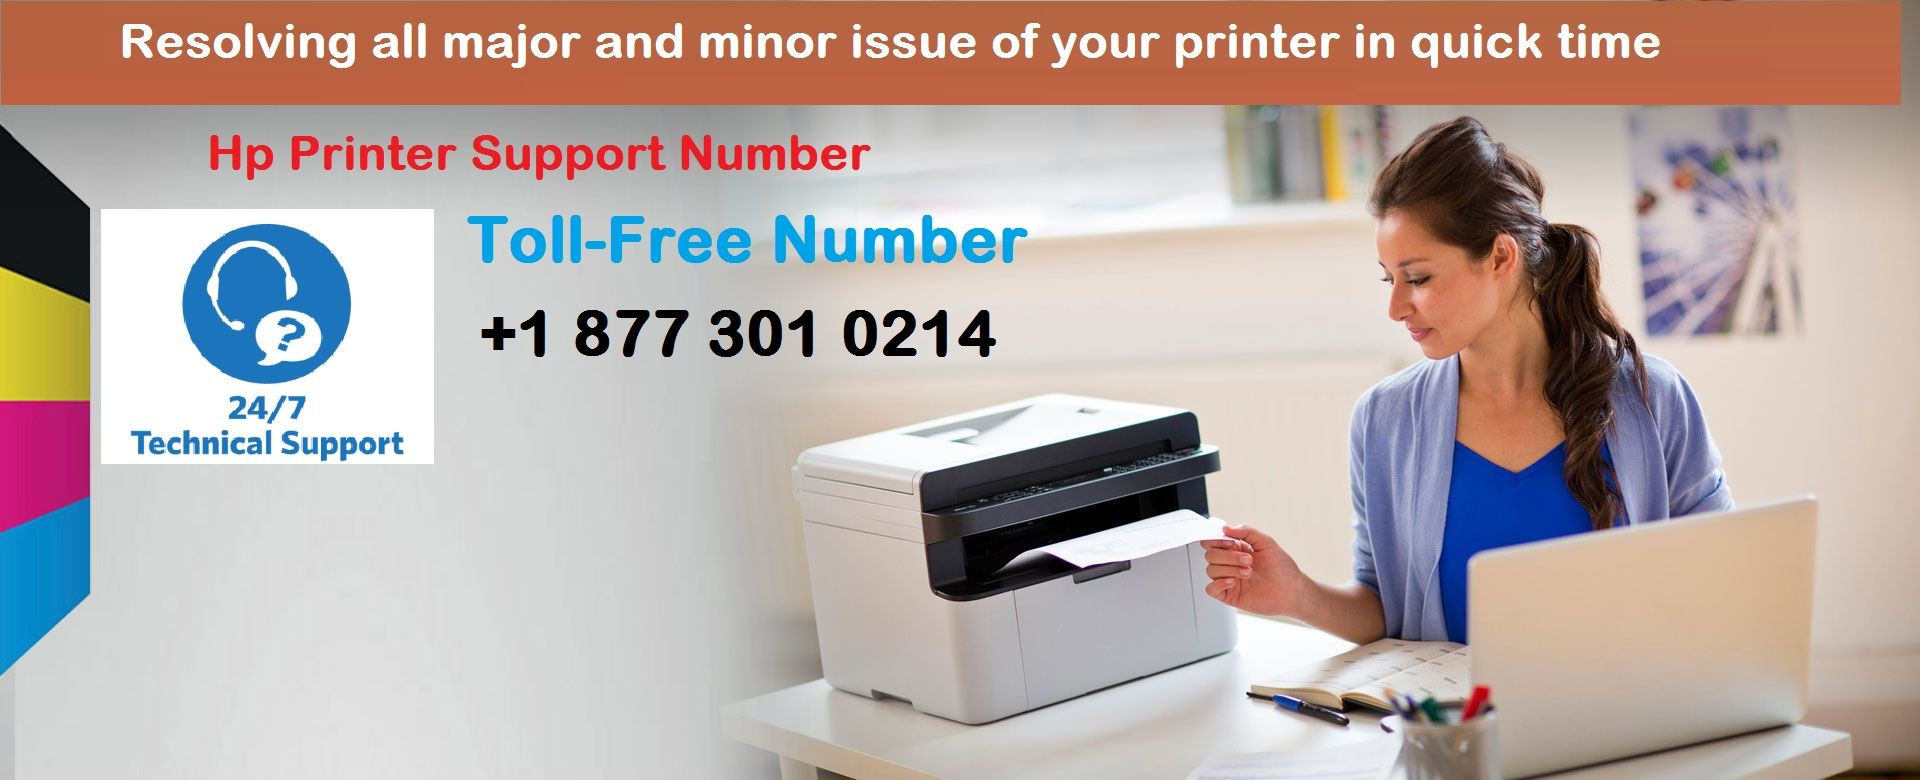 Hp Printer Tech Support Phone Number For Getting Fast Tech